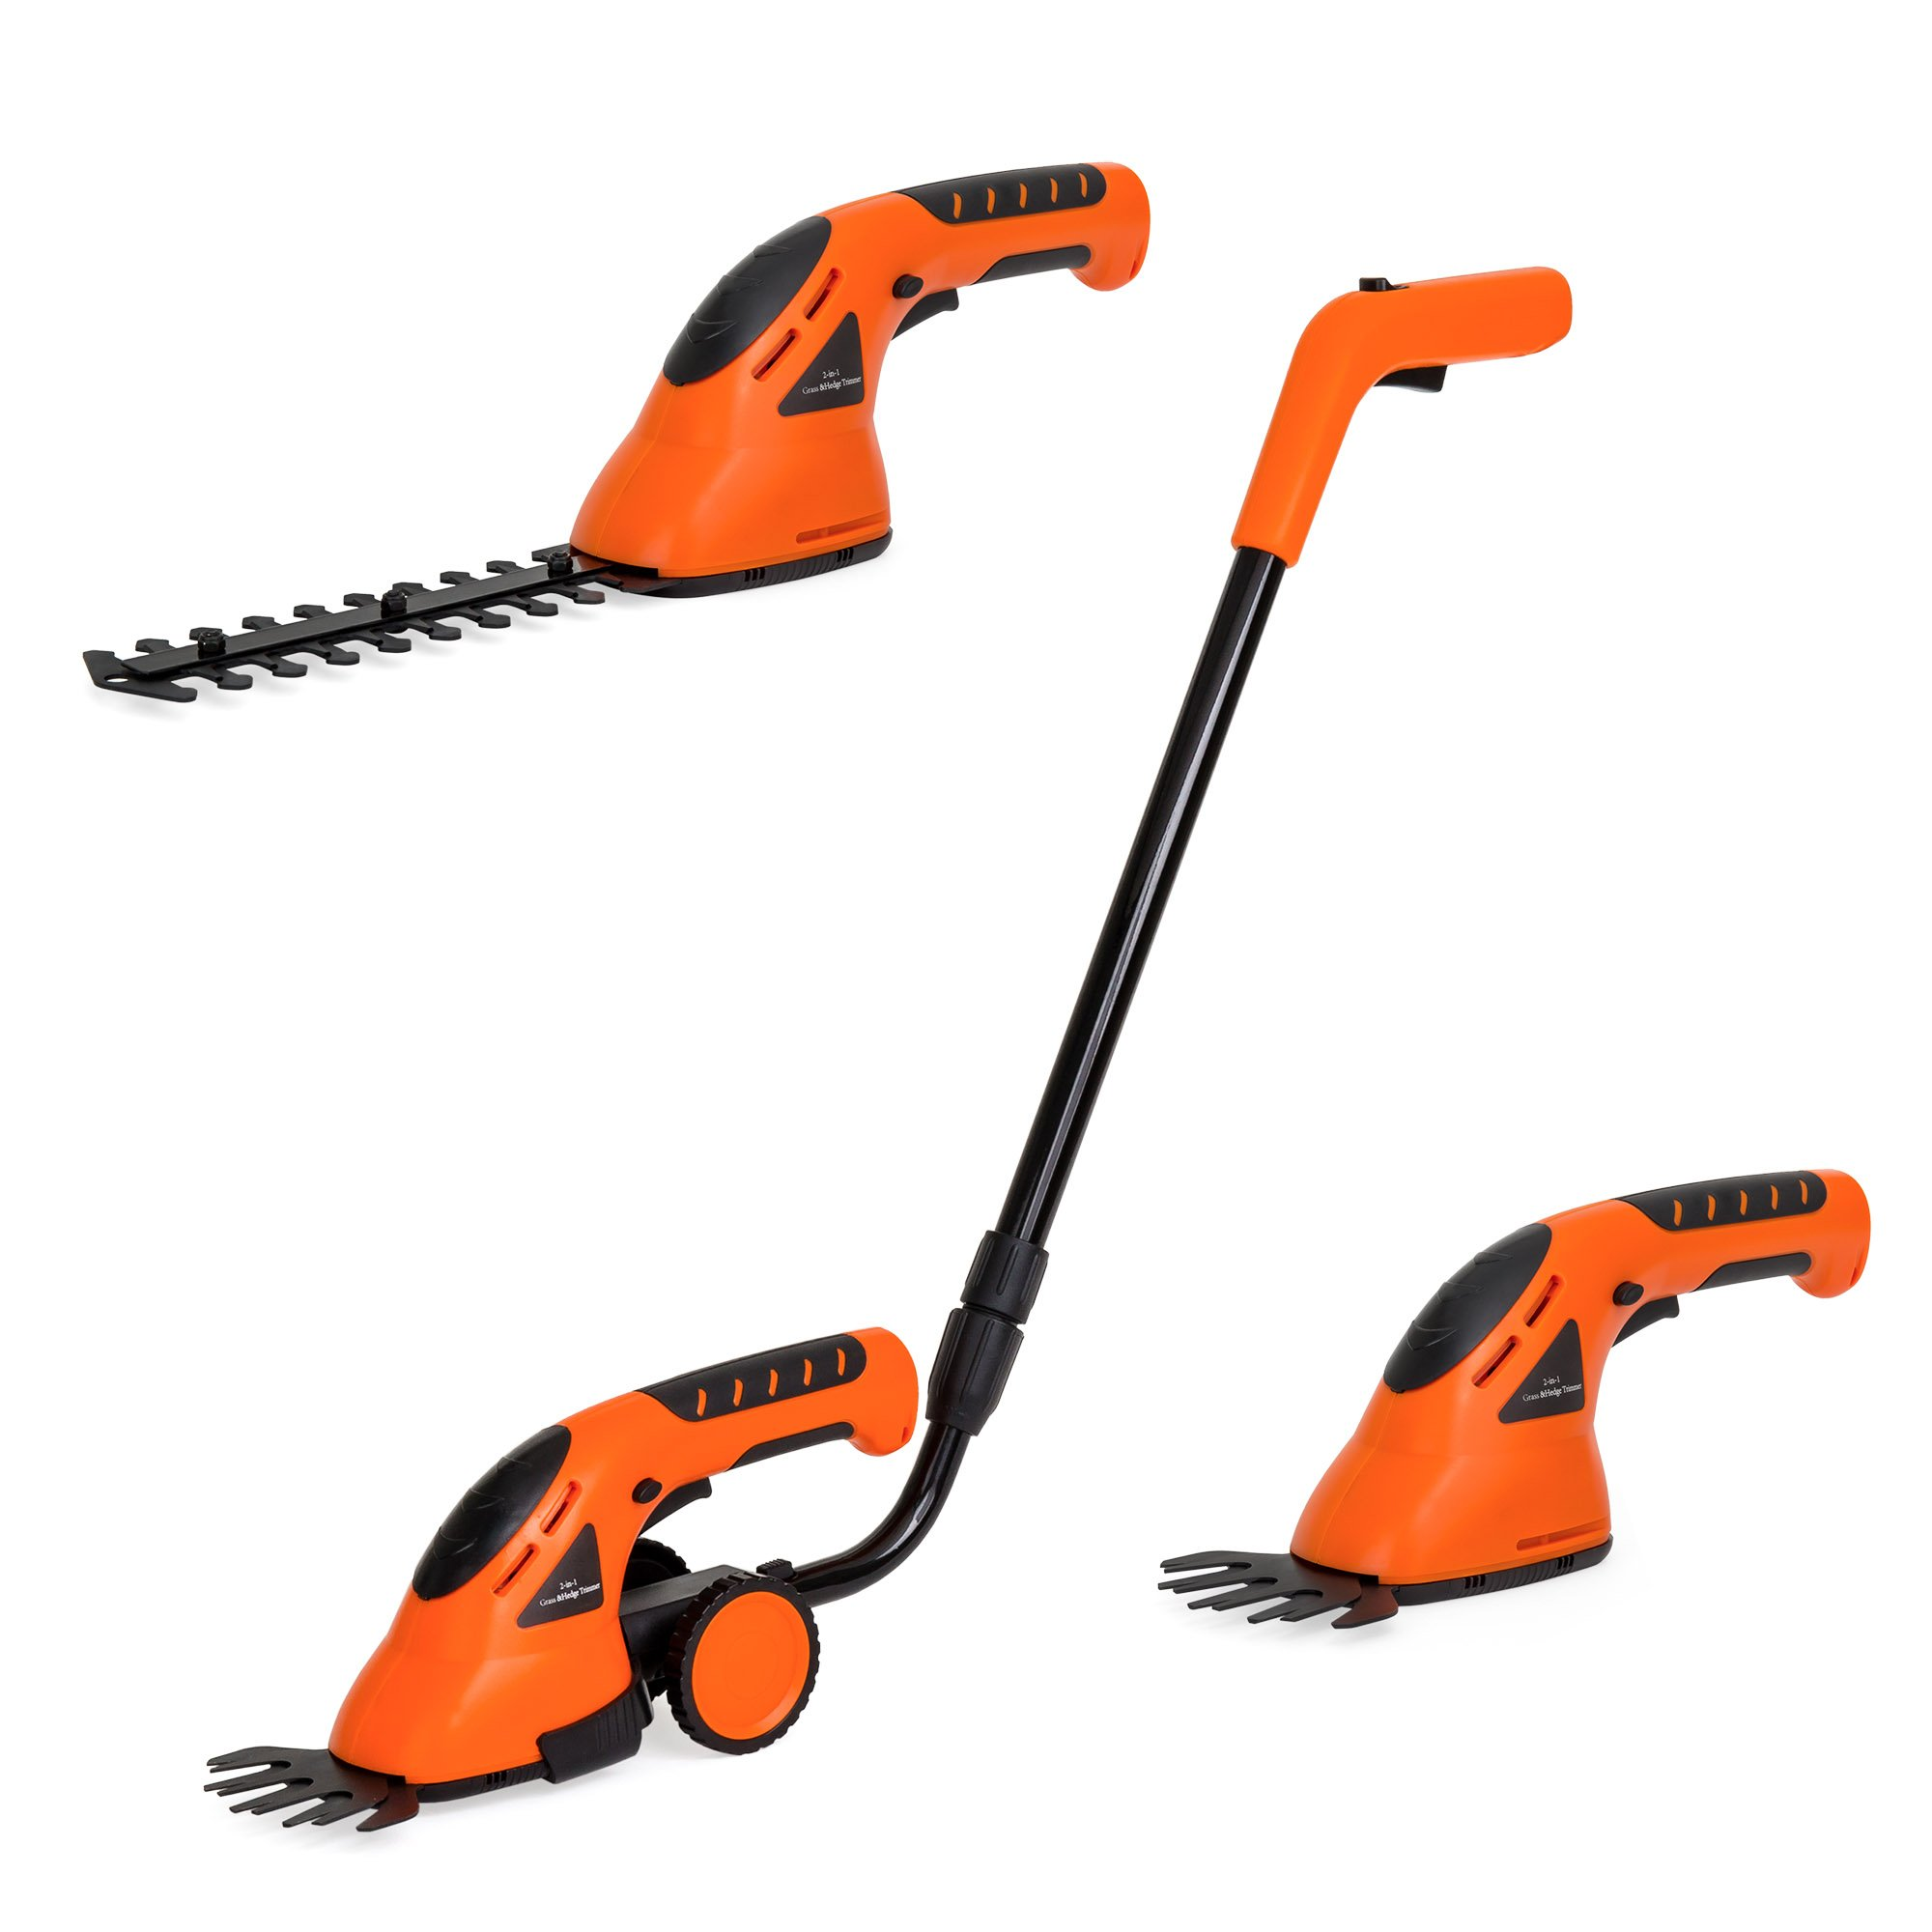 Best Choice Products 7.2V 2-in-1 Cordless Rechargeable Electric Grass & Hedge Trimmer with 2 Blades